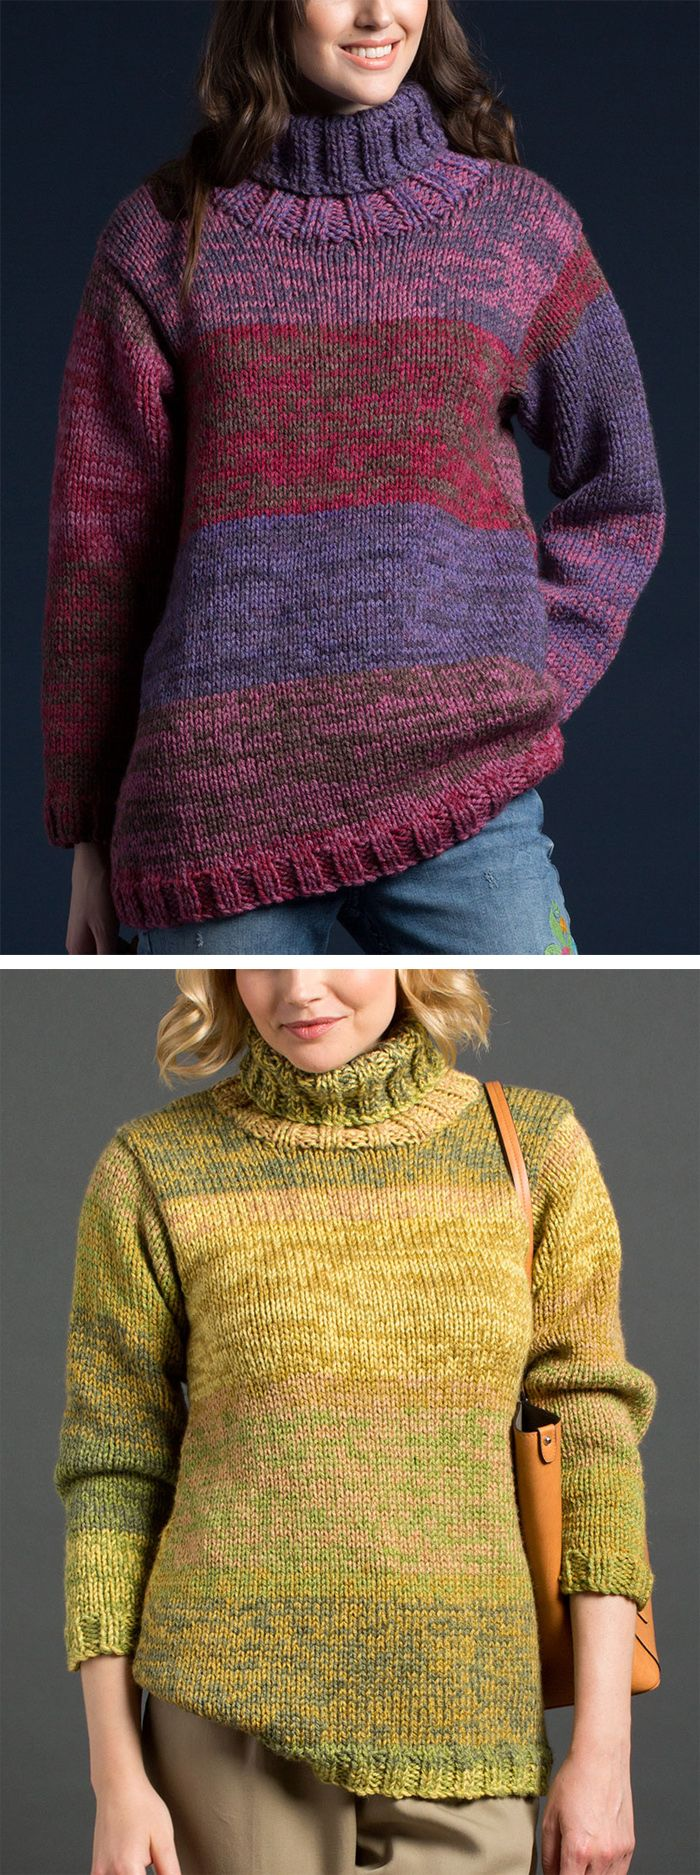 Free Knitting Pattern for Easy On The Double Pullover - Quick easy long-sleeved sweater is knit in stockinette and rib using two strands of worsted weight yarn. The gradient color is achieved by using multi-colored yarn with the colorways staggered for contrast. Sizes XS to 5XL. The pattern does require picking up some stitches on part of the neckline.